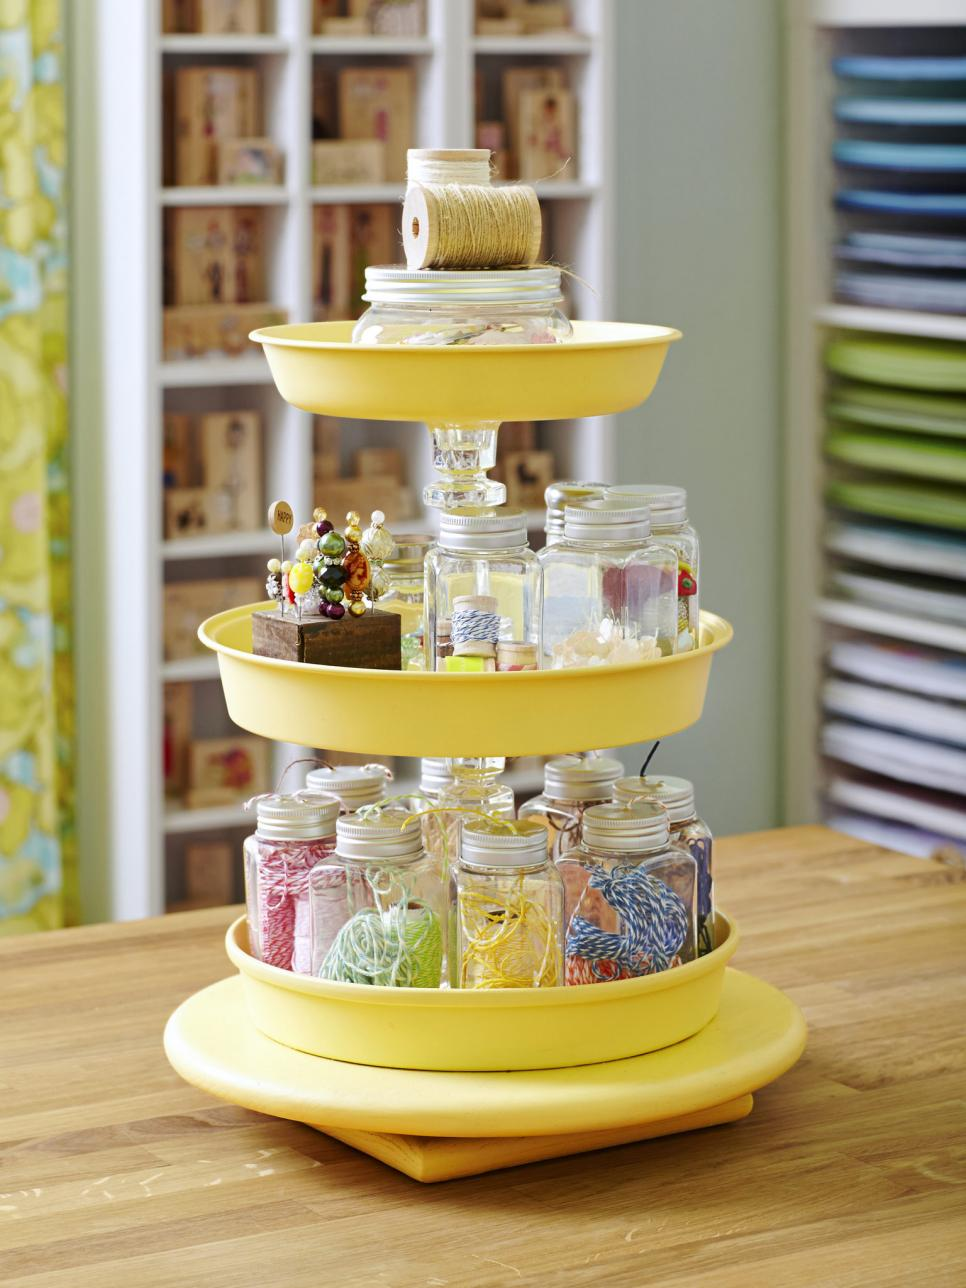 Craft And Sewing Room Storage Organization HGTV